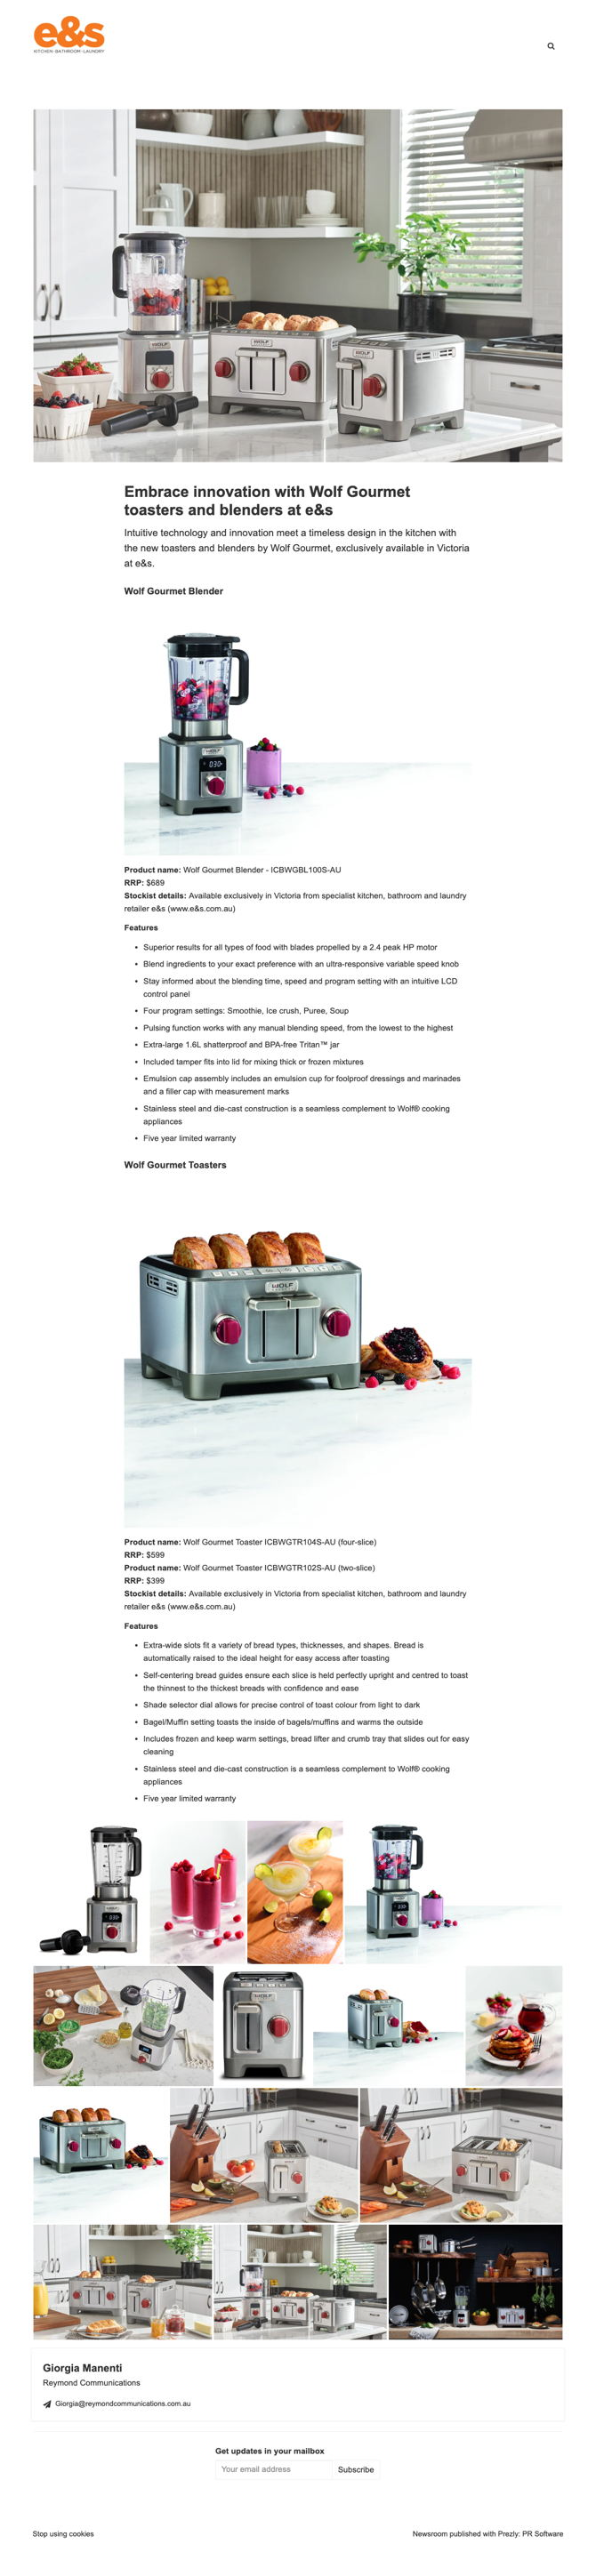 Embrace innovation with Wolf Gourmet toasters and blenders at e&s